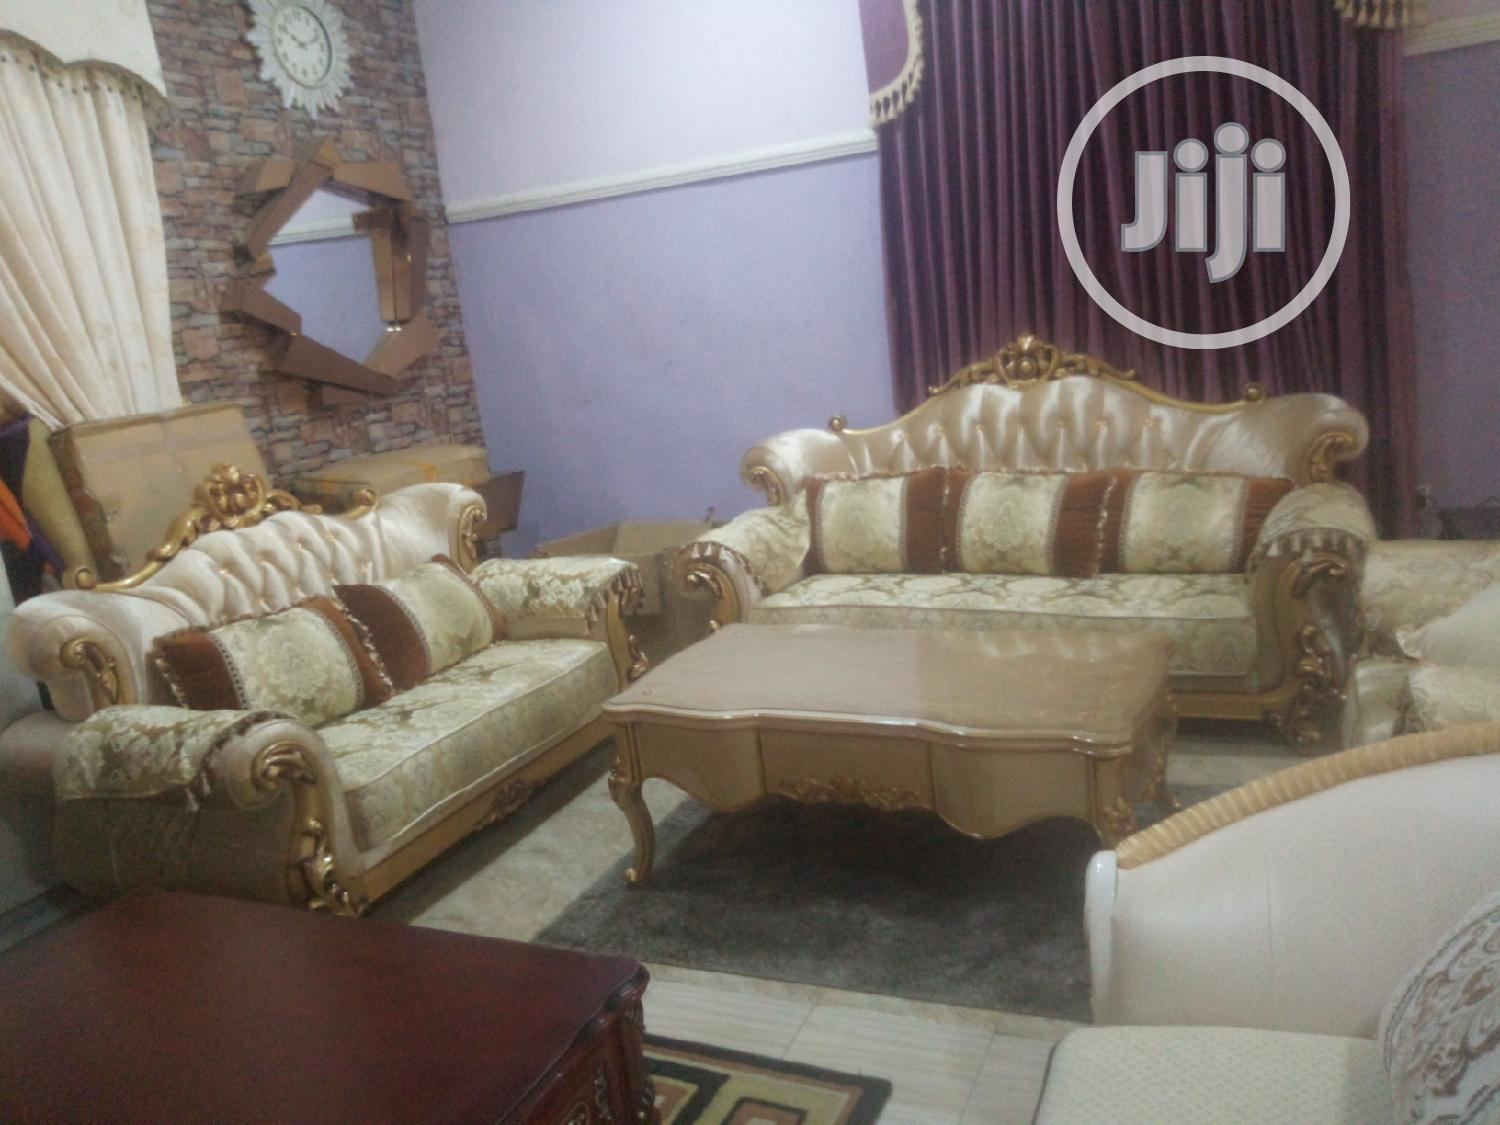 Quality Royal Sofa | Furniture for sale in Ojo, Lagos State, Nigeria